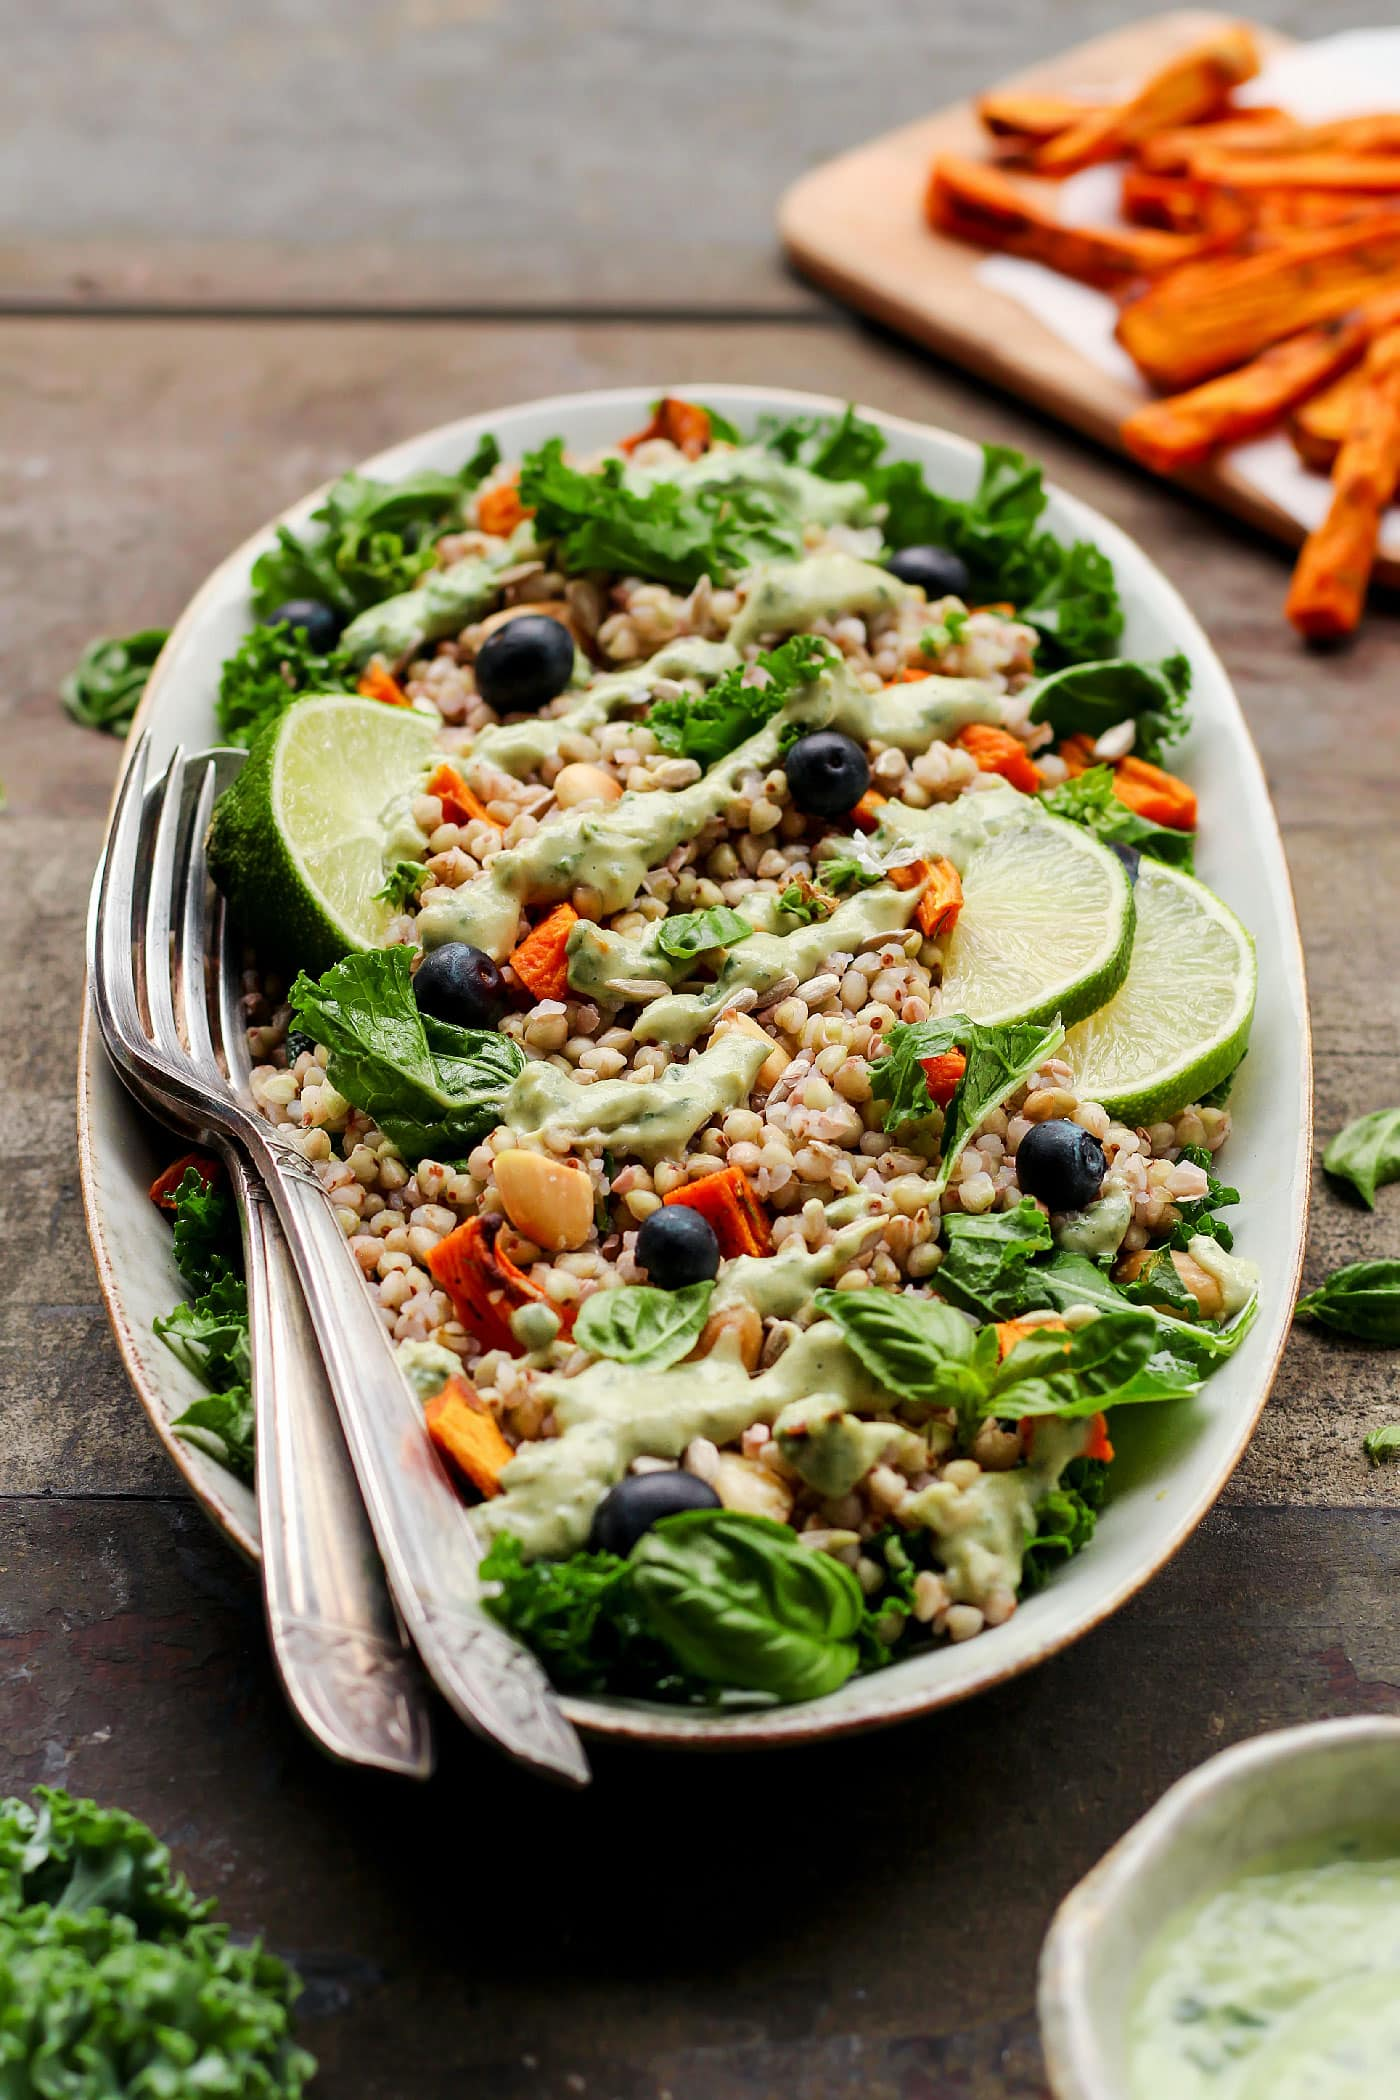 Sweet Potato & Pesto Buckwheat Salad